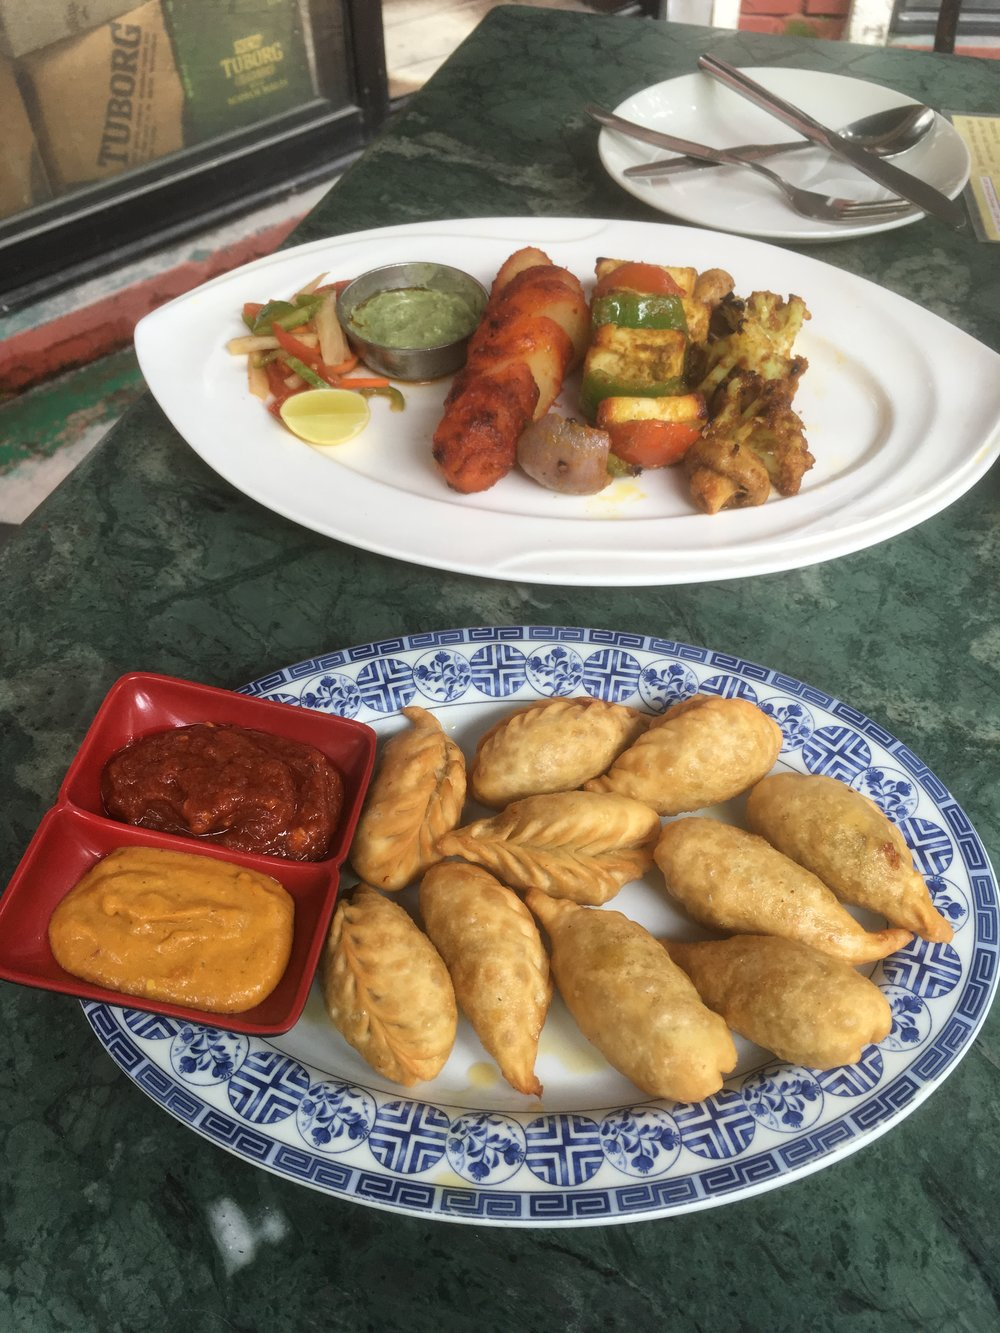 Our fantastic lunch of fried momo and veg